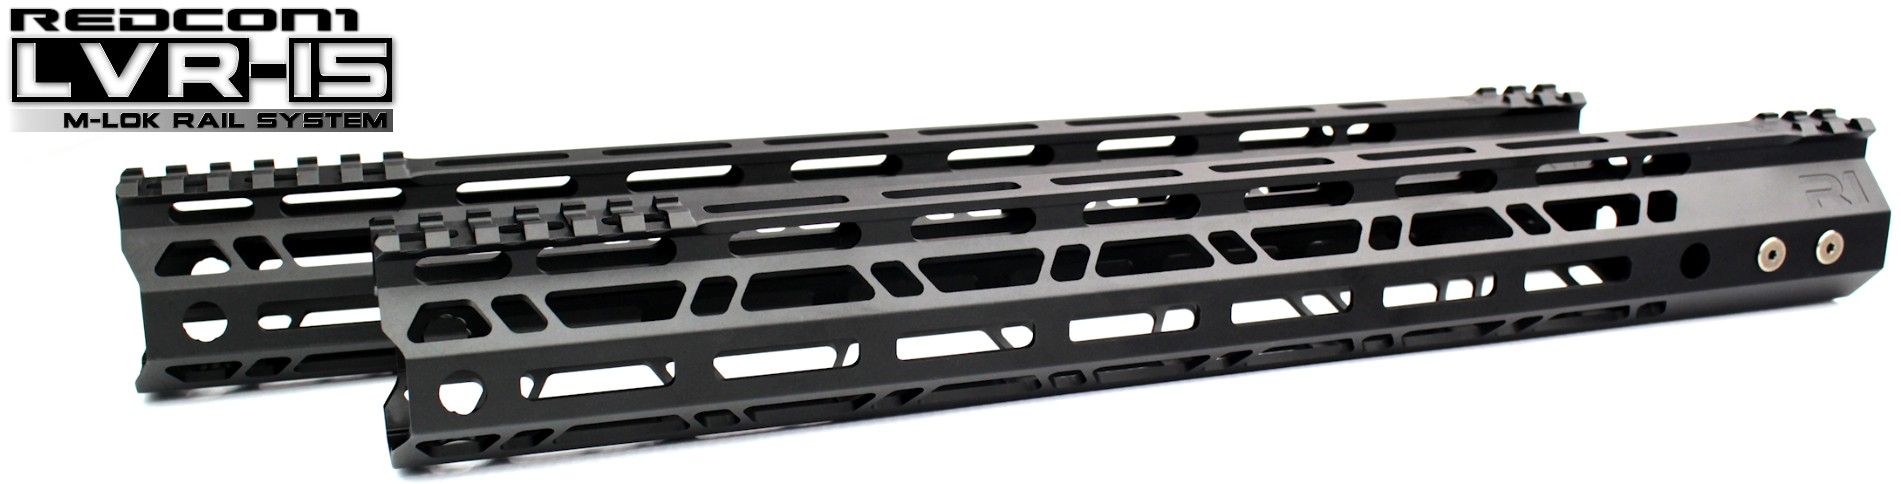 R1 Tactical LVR-15 M-LOK Handguard | Redcon1 Tactical